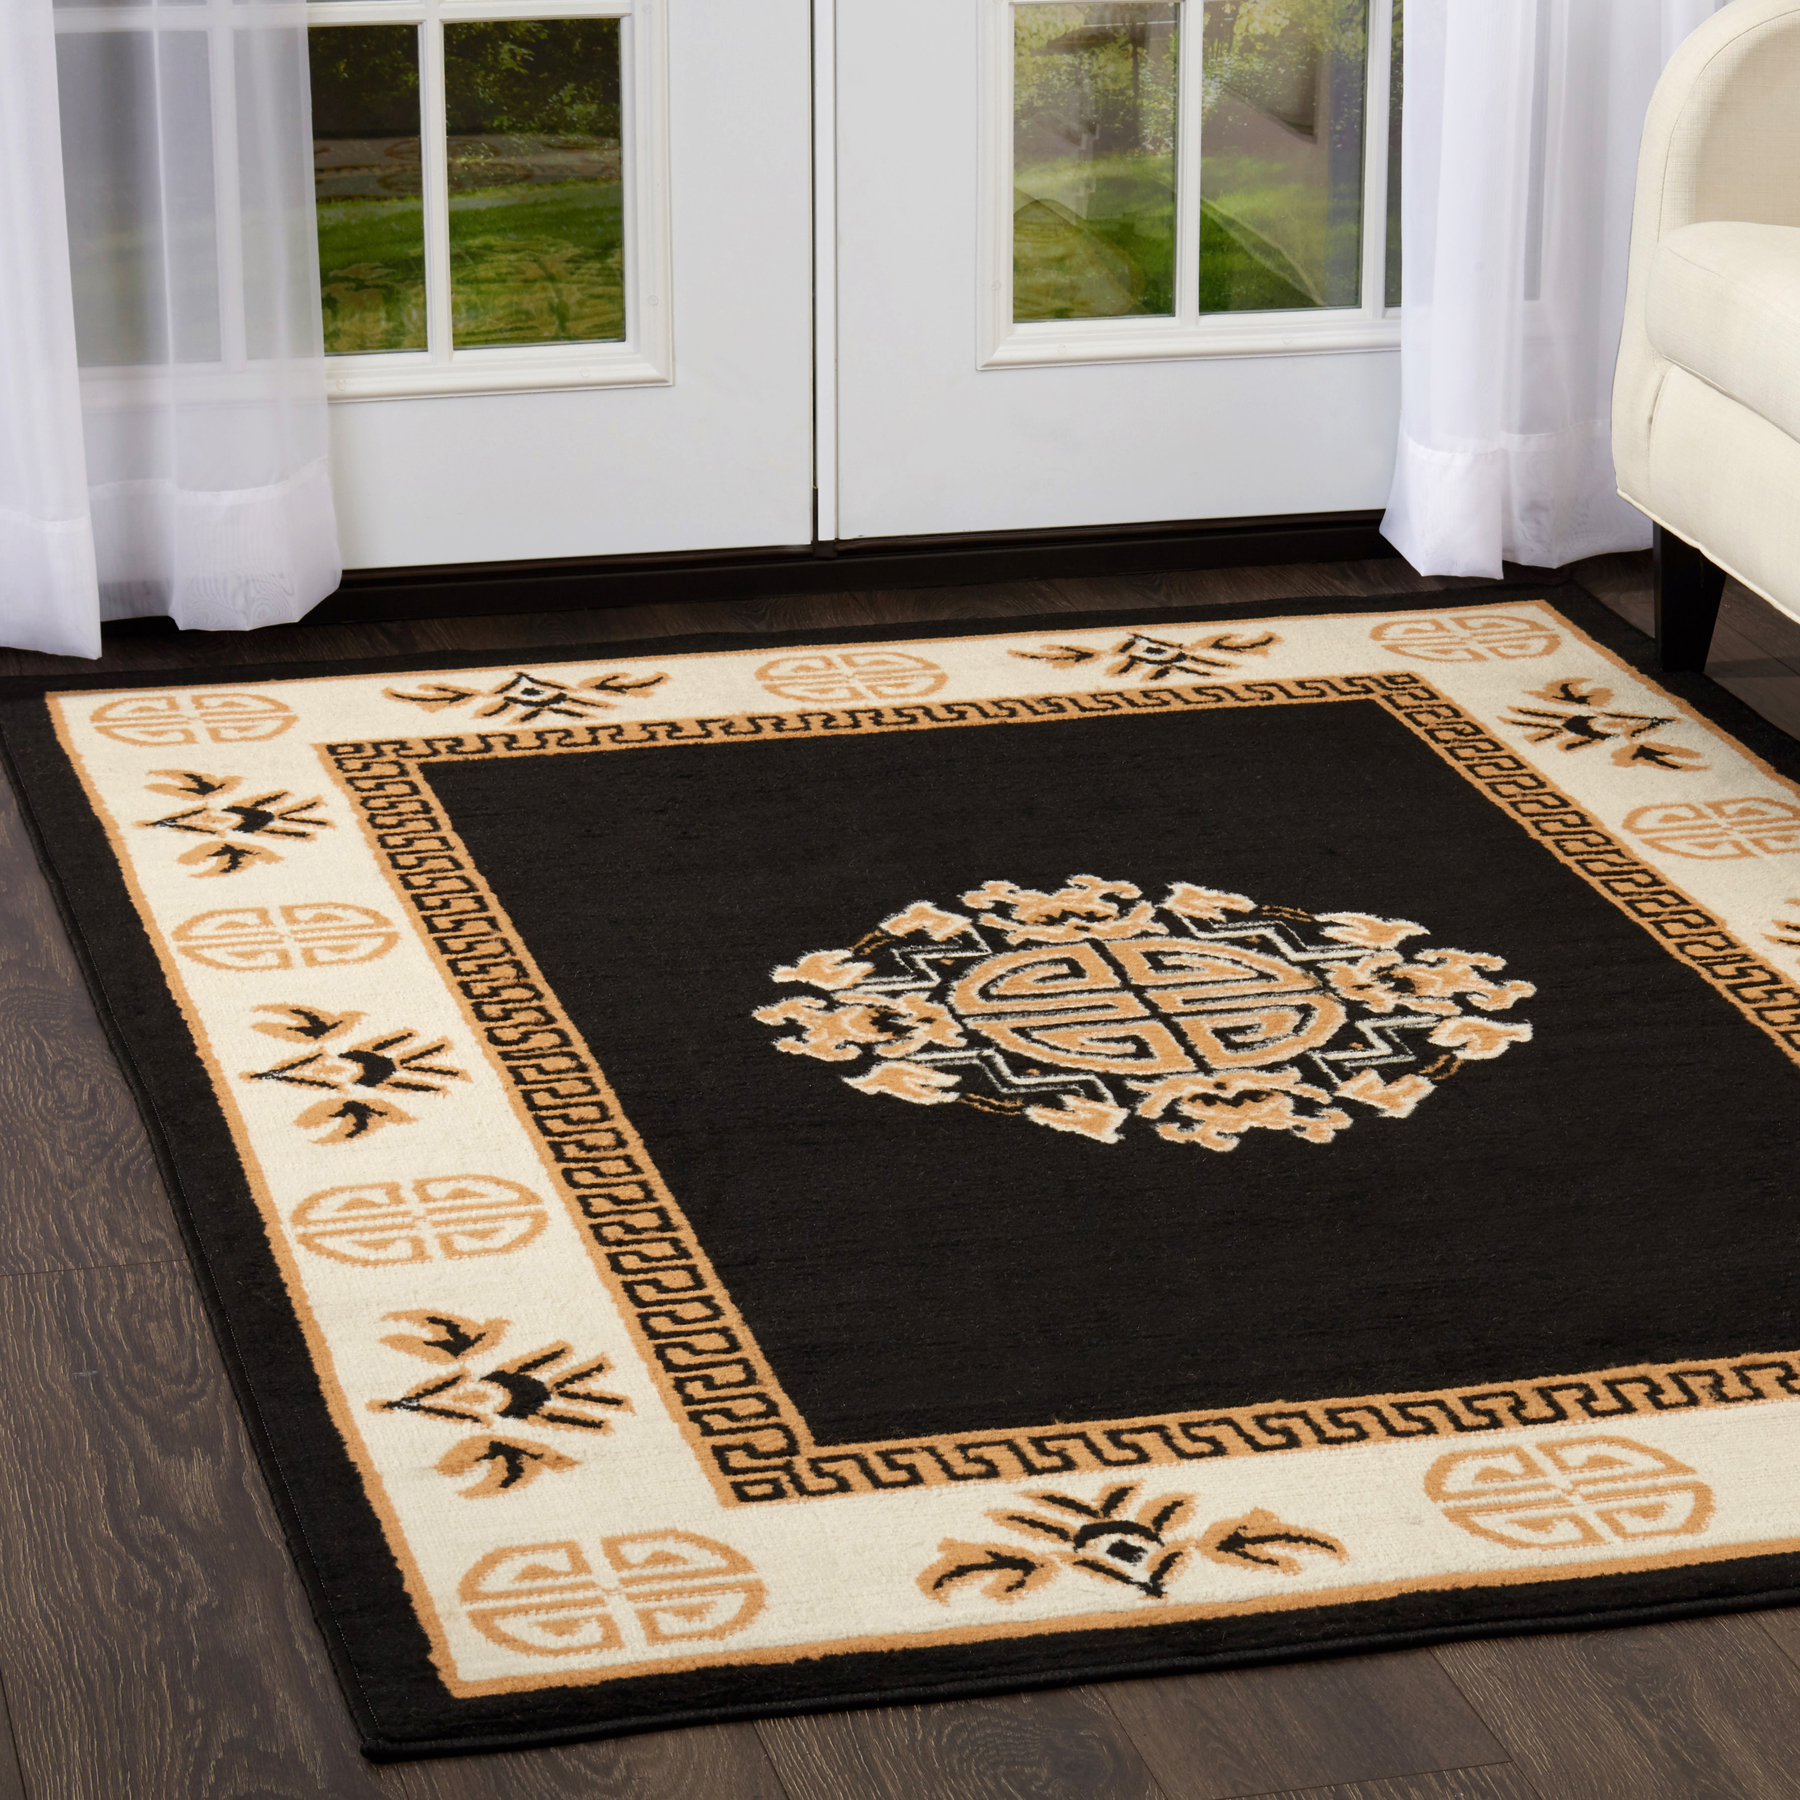 Persian Rug House: Oriental Medallion Area Rug Traditional 5x7 Persian Carpet